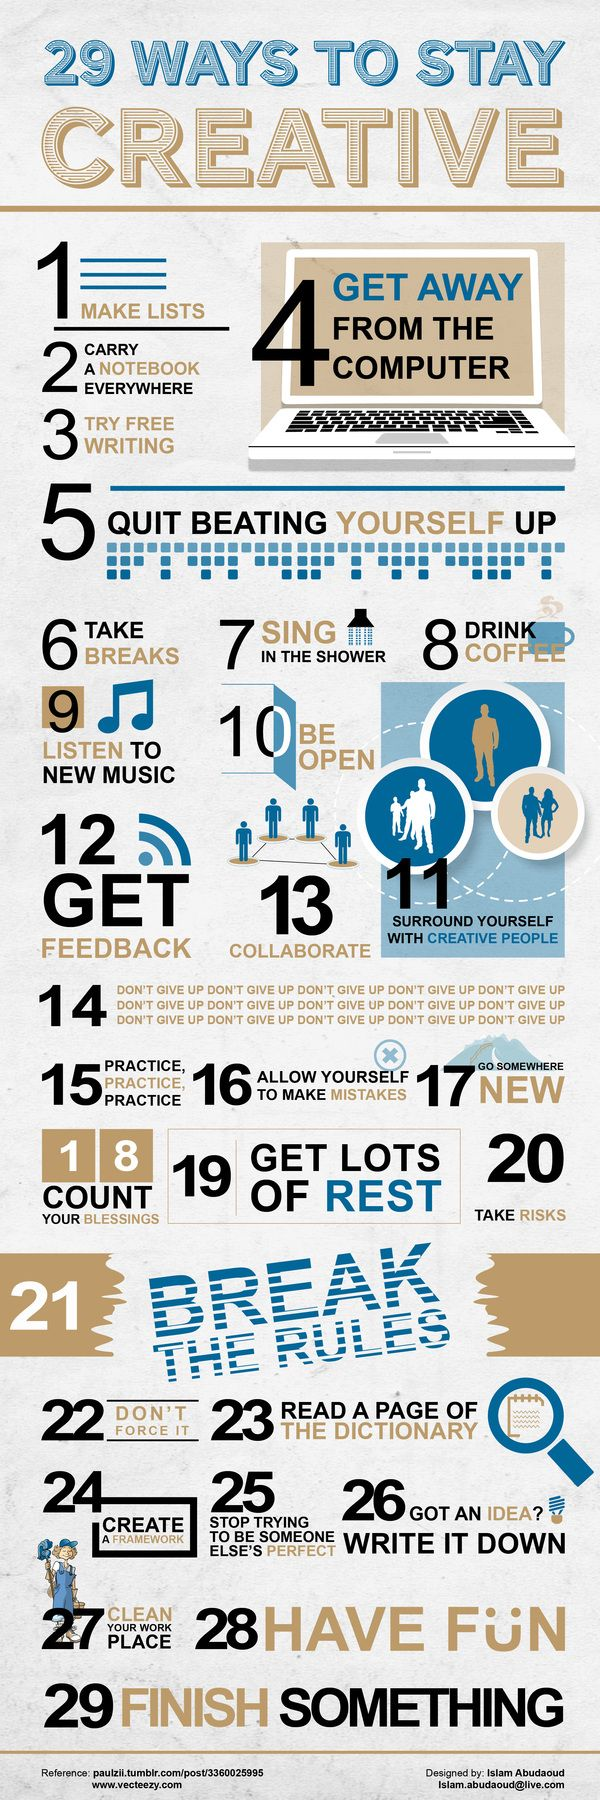 29 ways to stay #creative